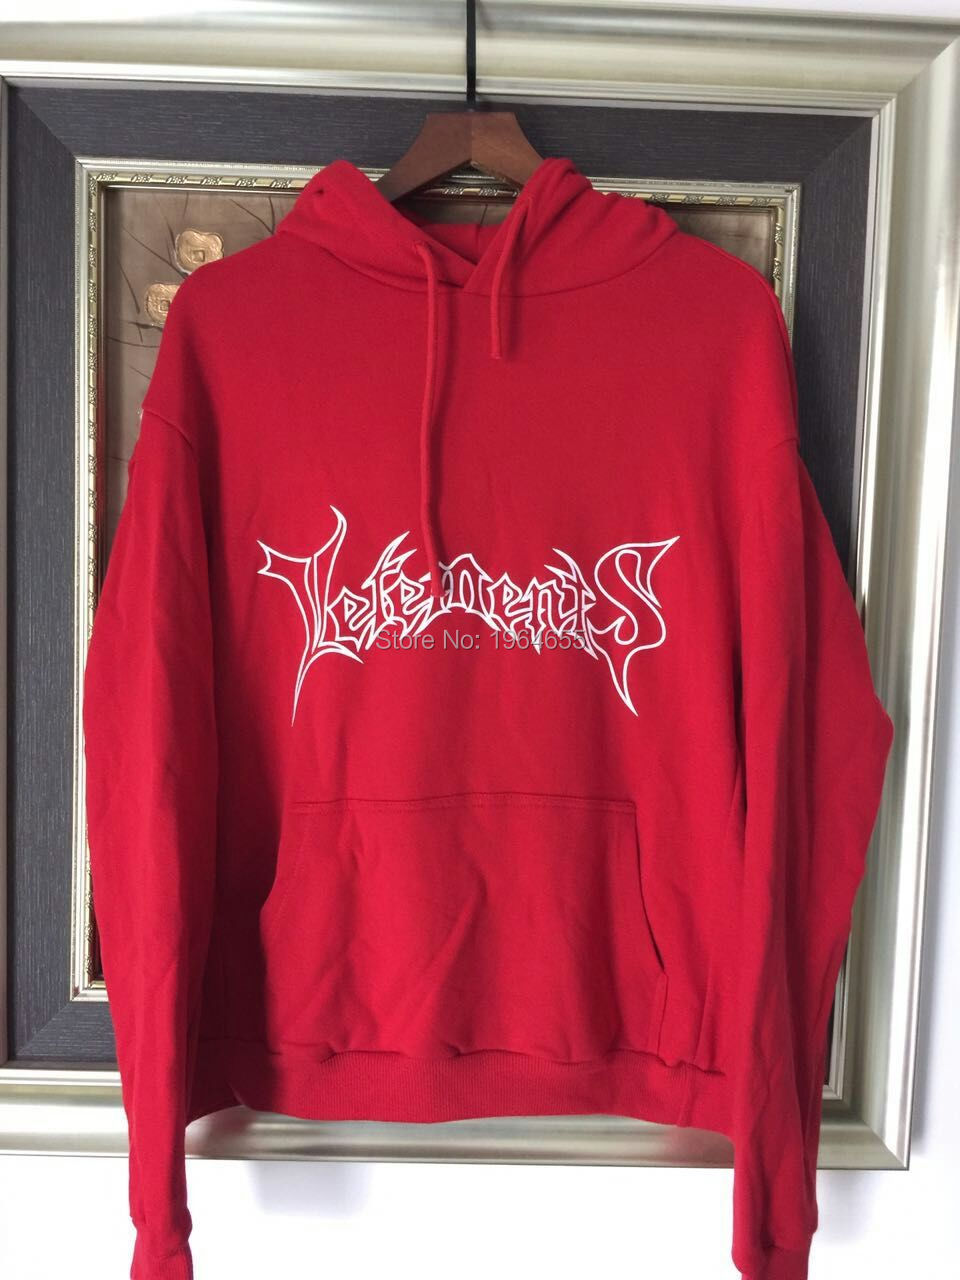 designer hoodie picture more detailed picture about 2016 2017 2016 2017 hot cakes rare new hiphop design vetements red hoodie in seoul garage sale unisex